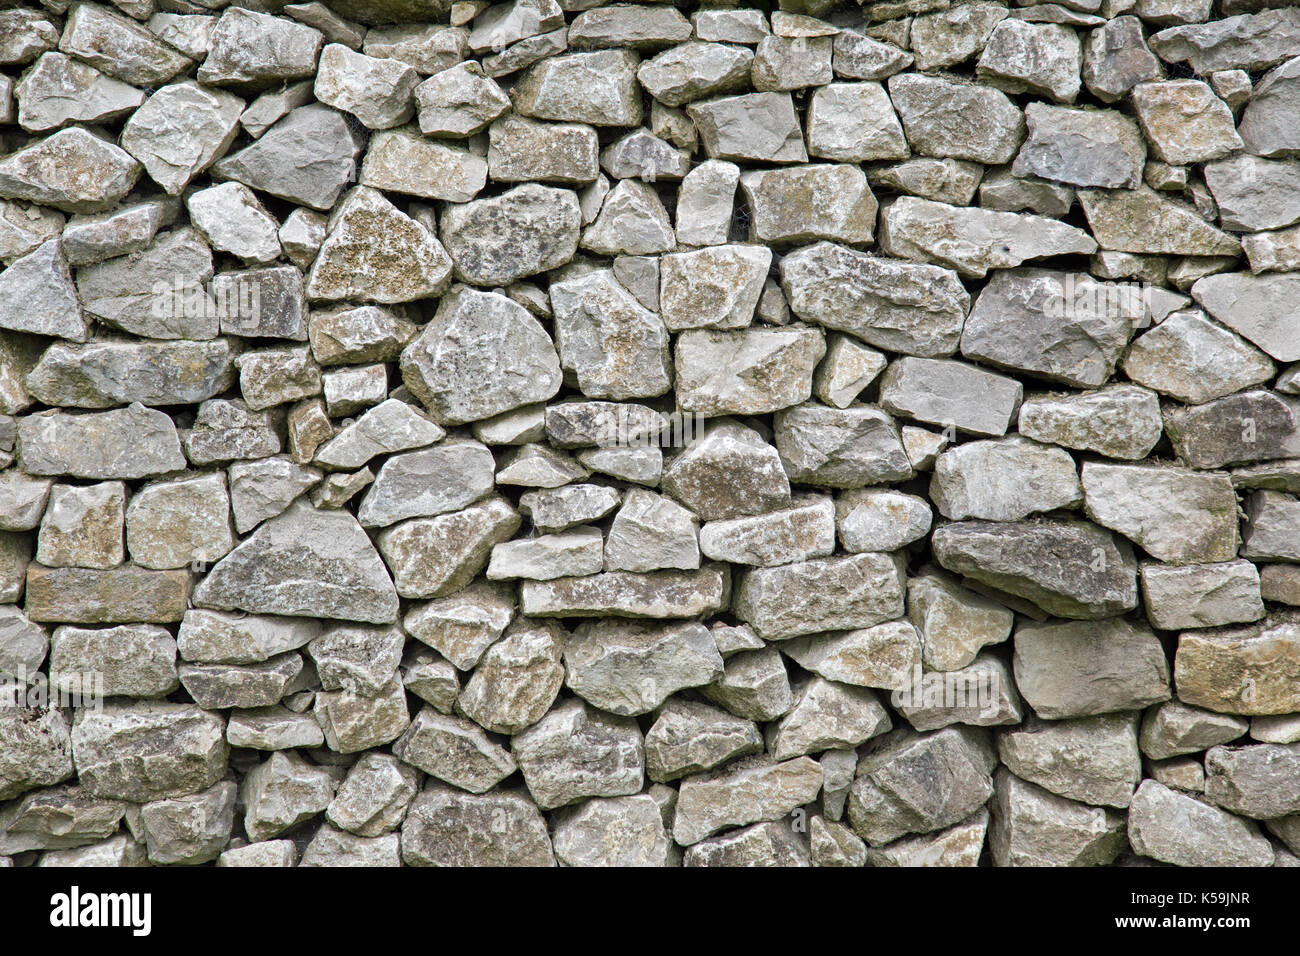 Dry stone wall texture background - Stock Image